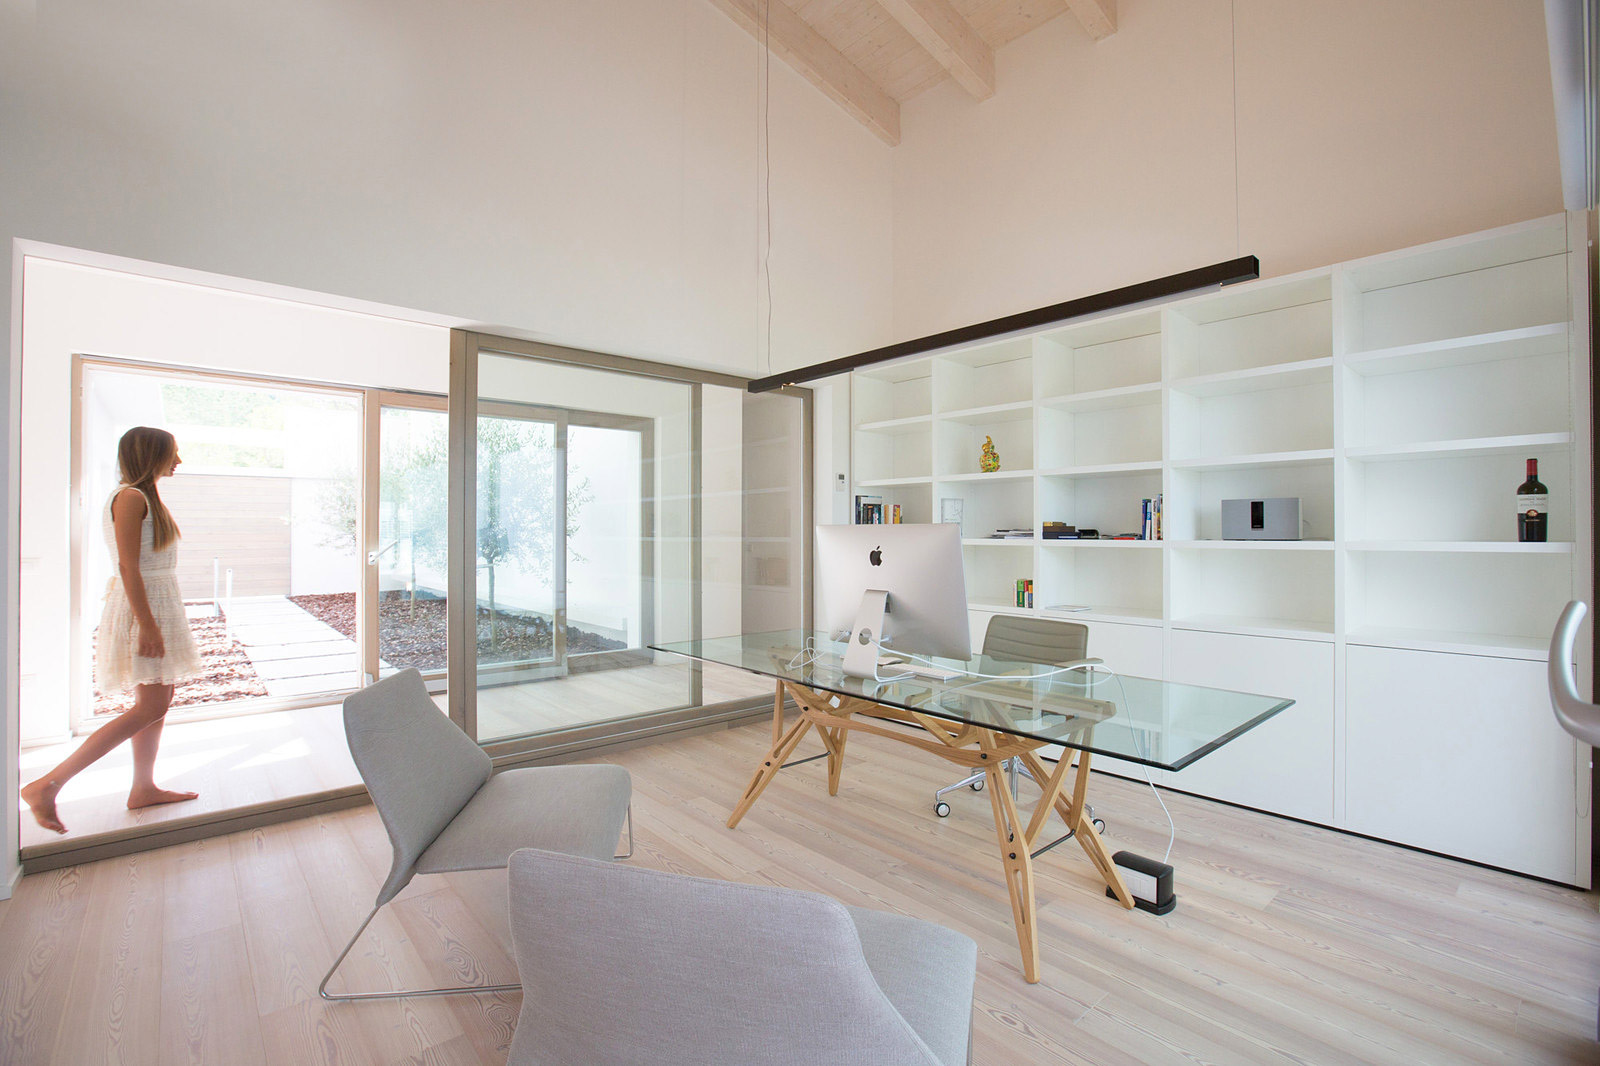 Study in a minimalist house